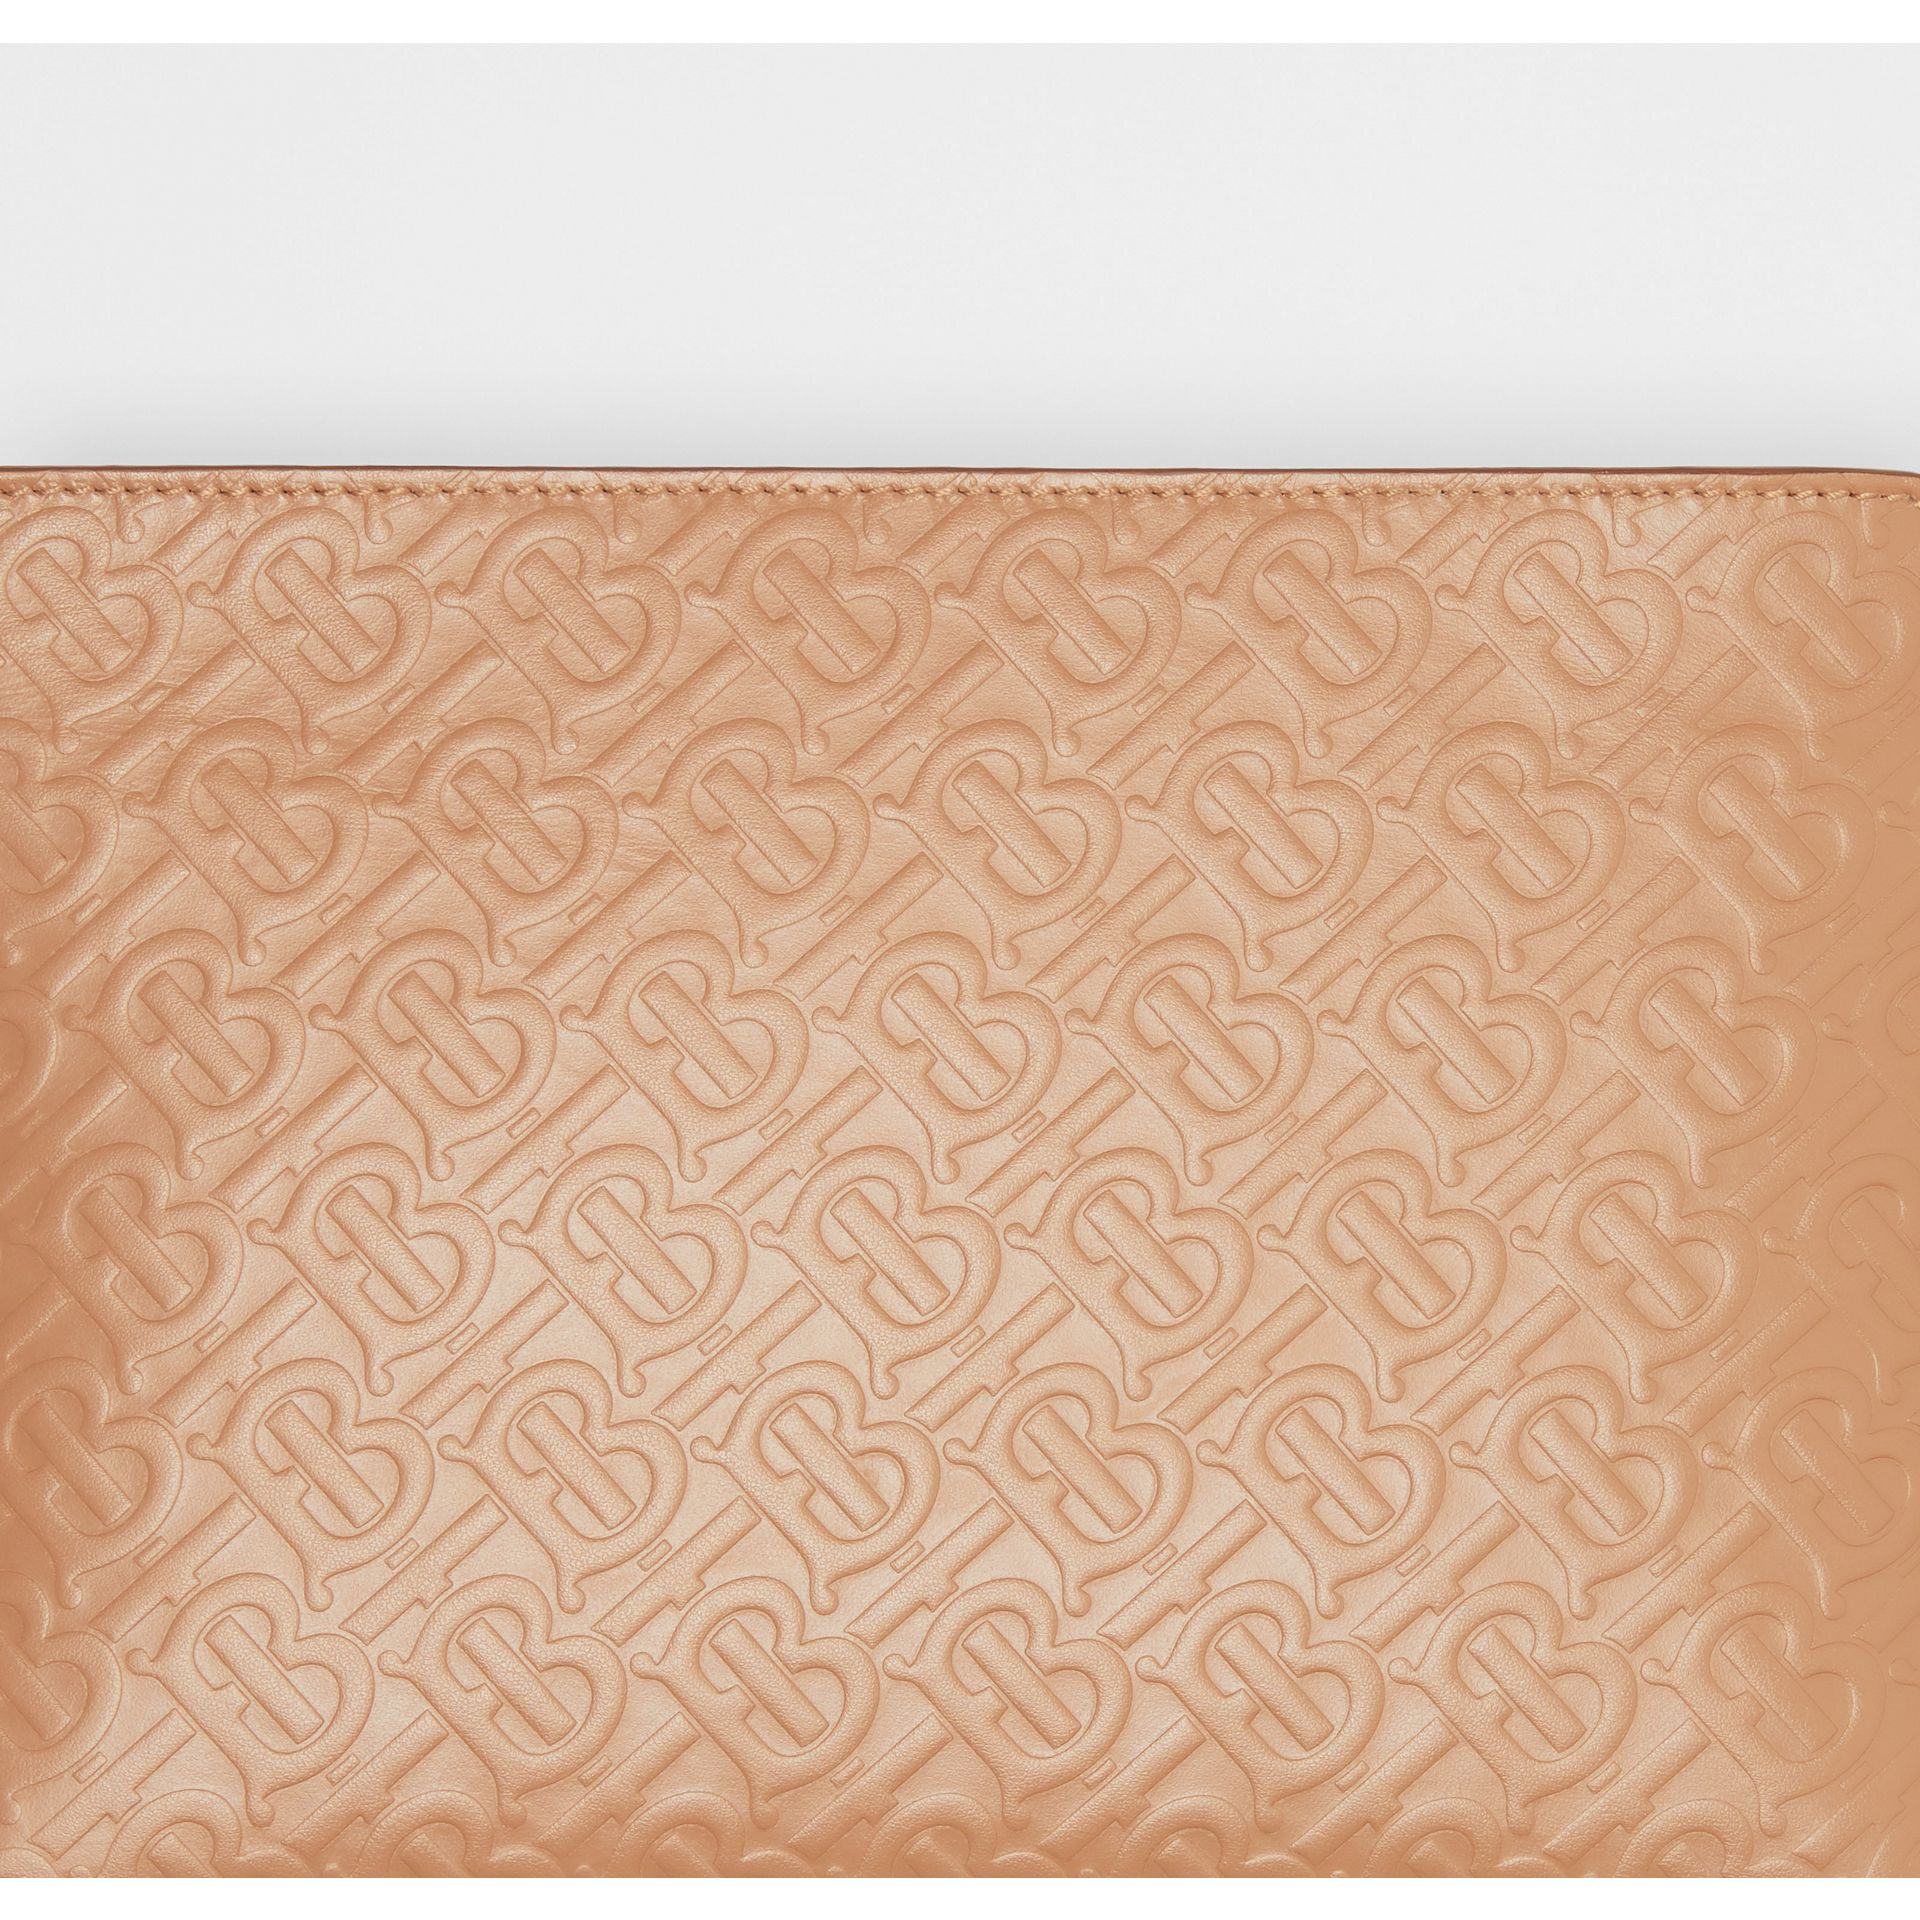 Medium Monogram Leather Clutch in Light Camel - Women | Burberry United Kingdom - gallery image 1